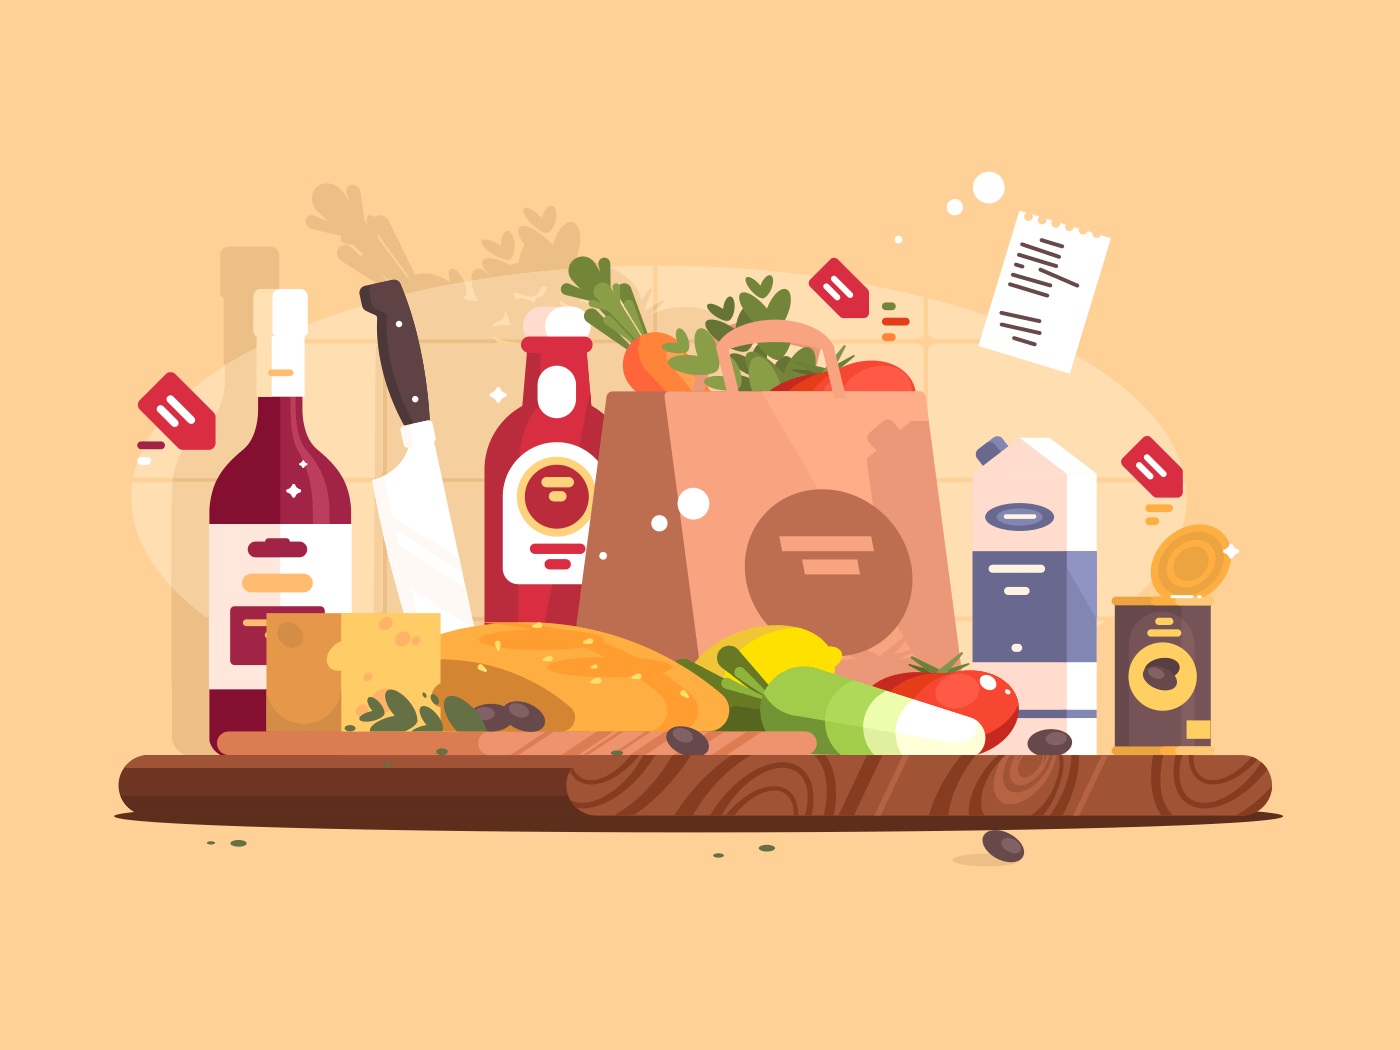 Food and ingredients for cooking. Vegetables, bread, cheese in kitchen. Vector illustration